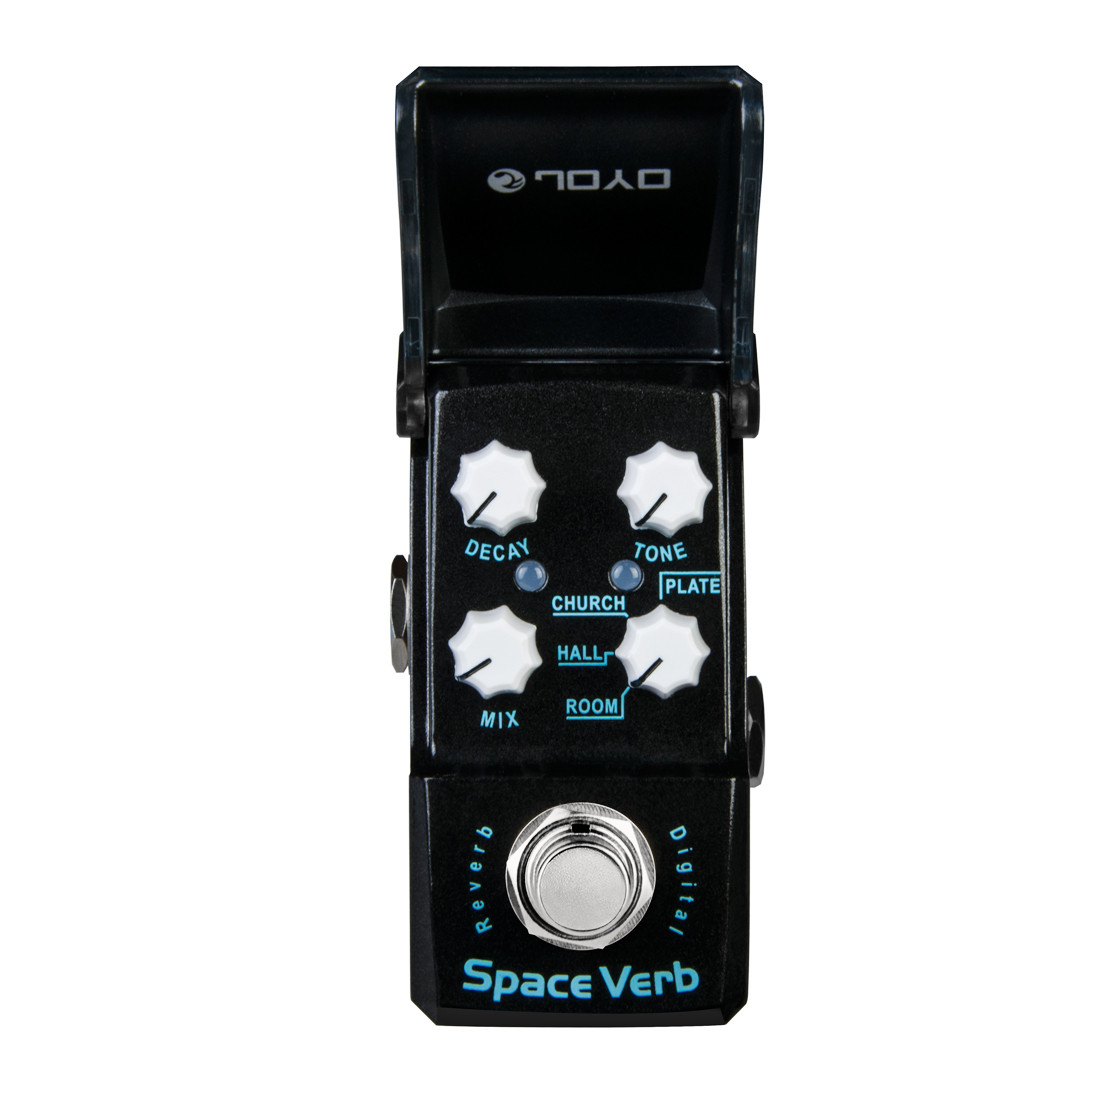 JOYO Space Verb Digital Guitar Effect Pedal True Bypass dobson c french verb handbook